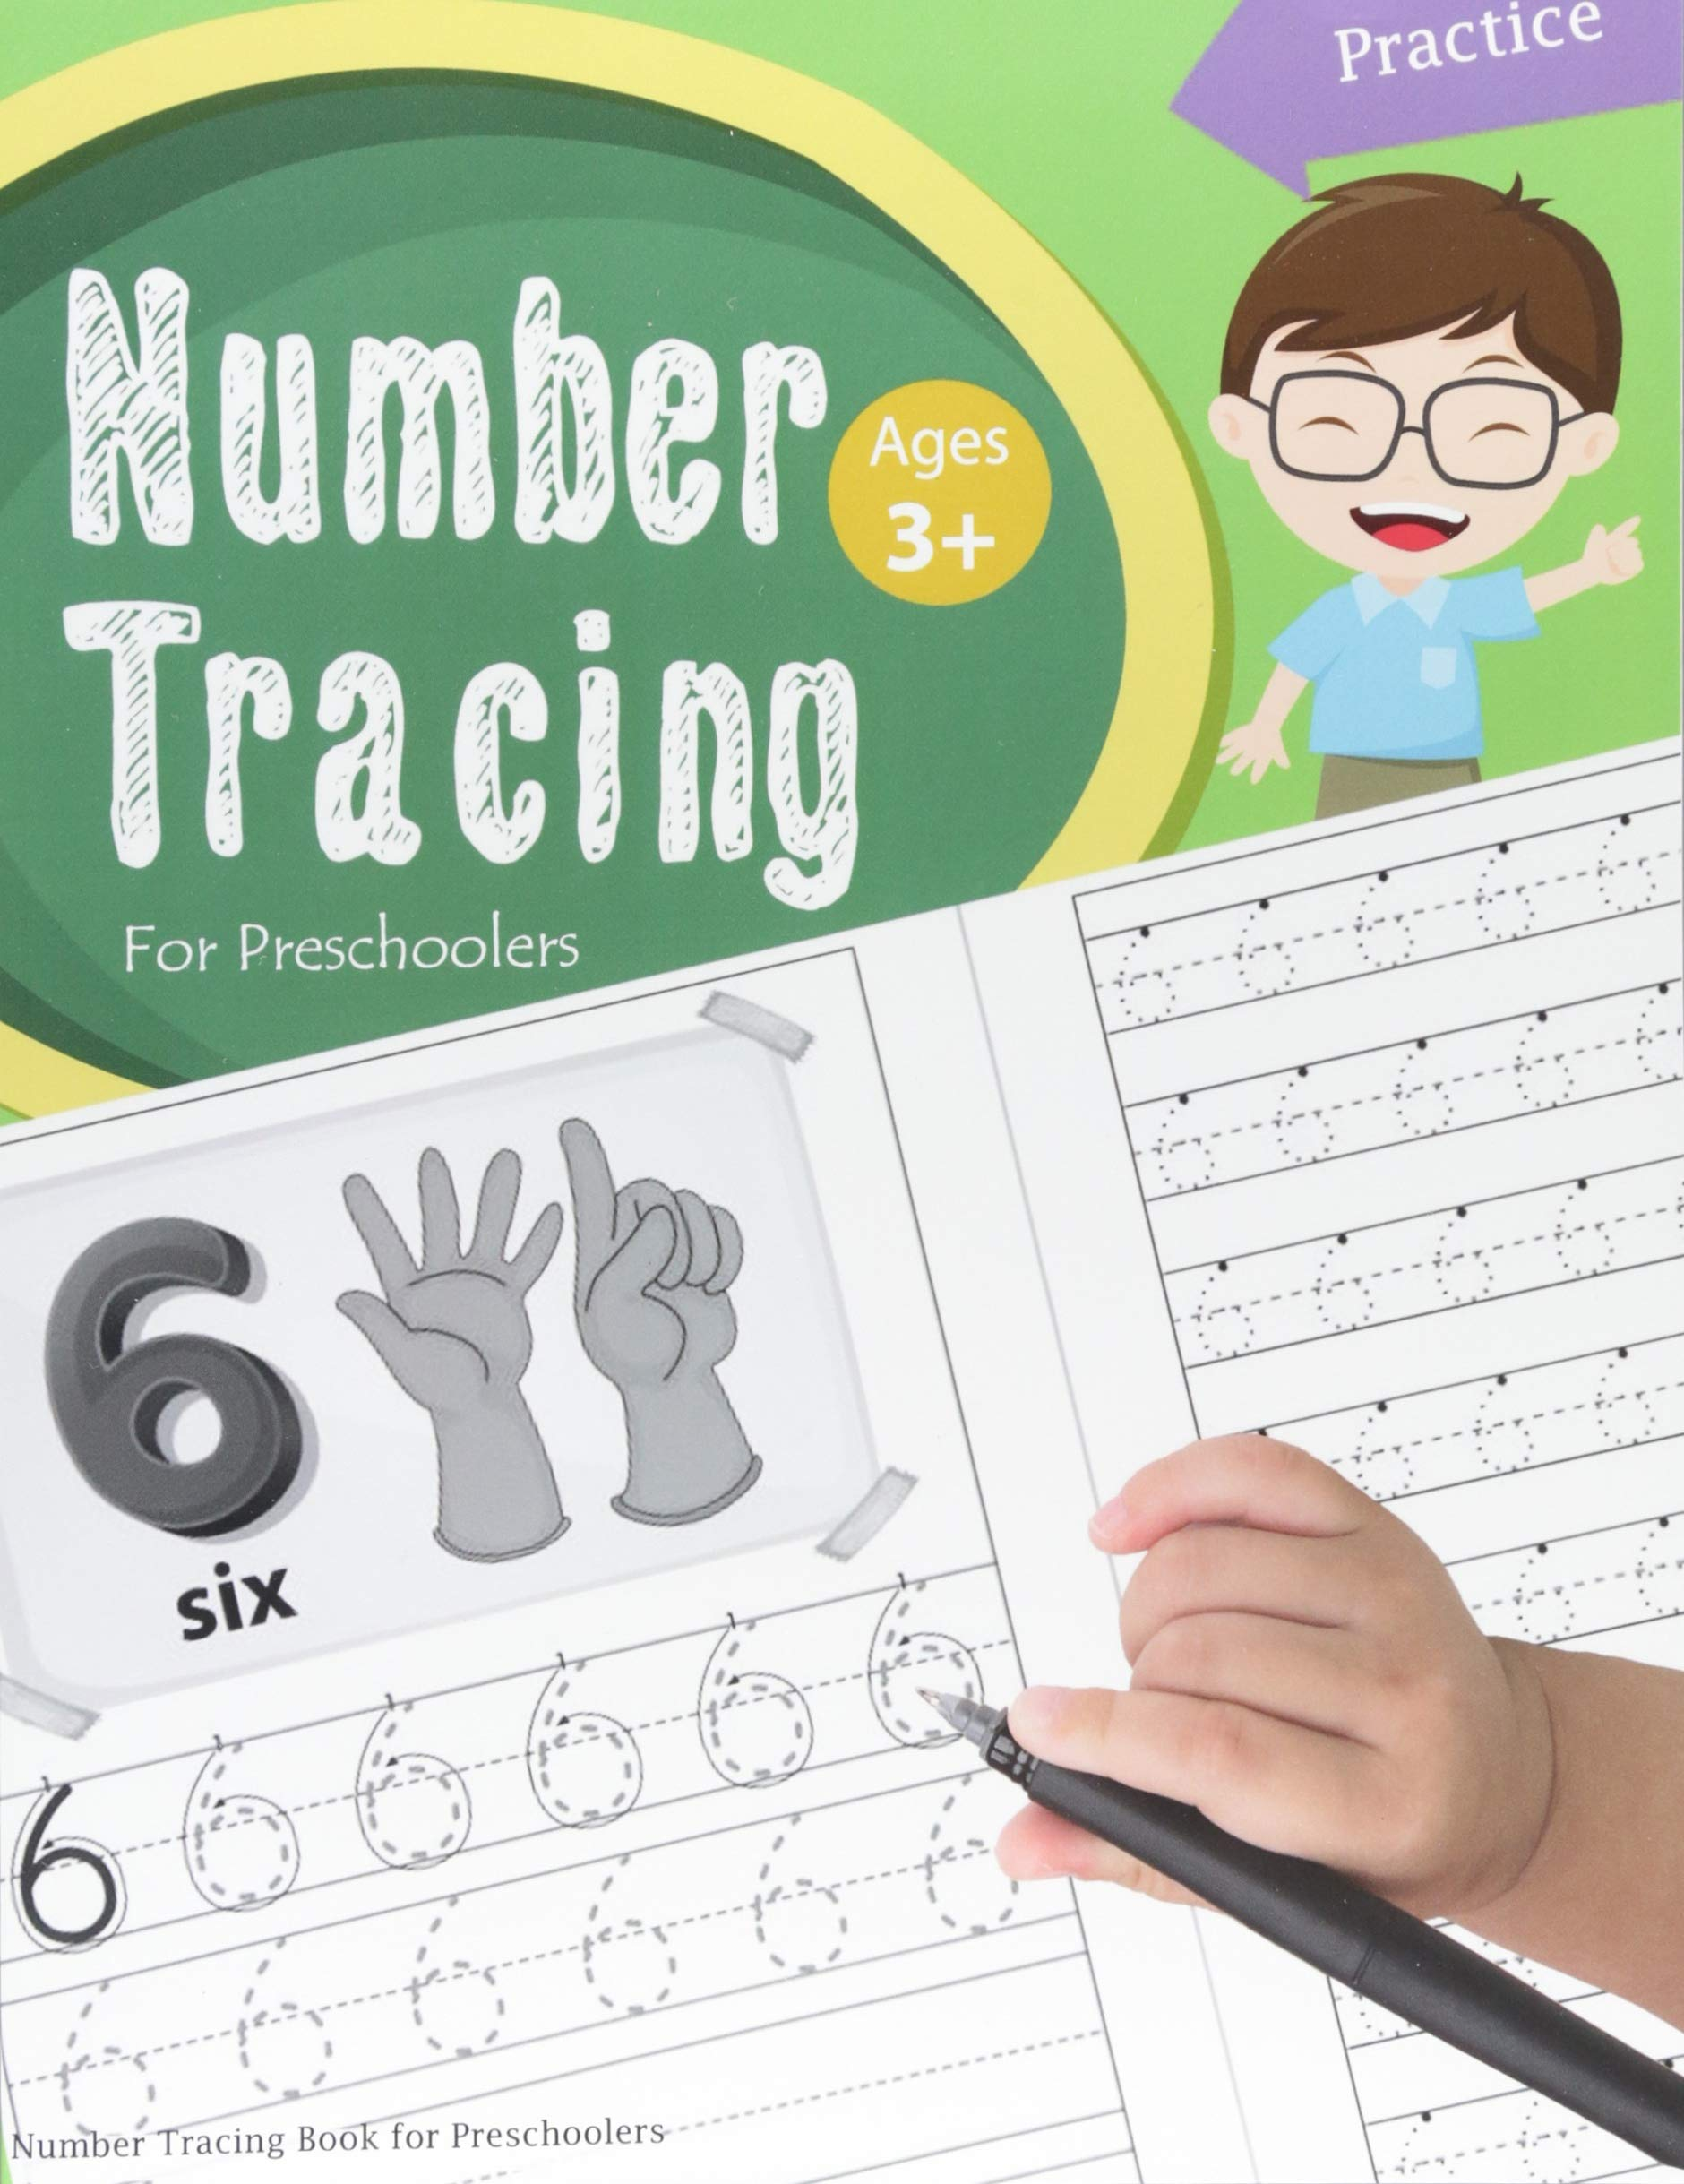 Number Tracing Book Preschoolers workbook product image